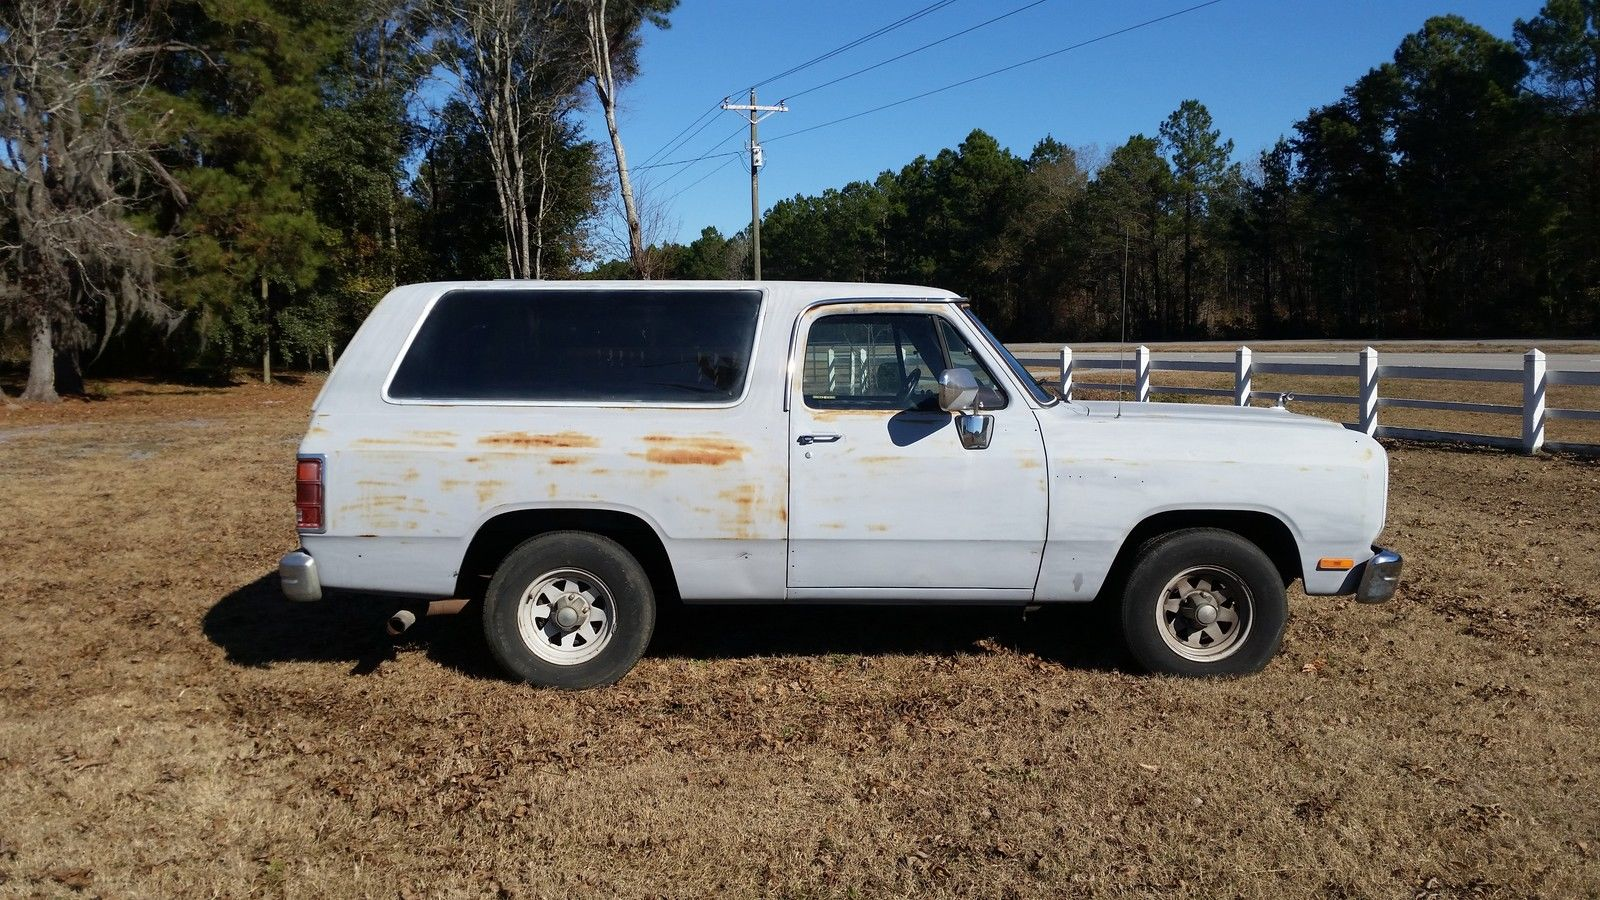 1988 Dodge Ramcharger 2wd Classic Dodge Ramcharger 1988 For Sale